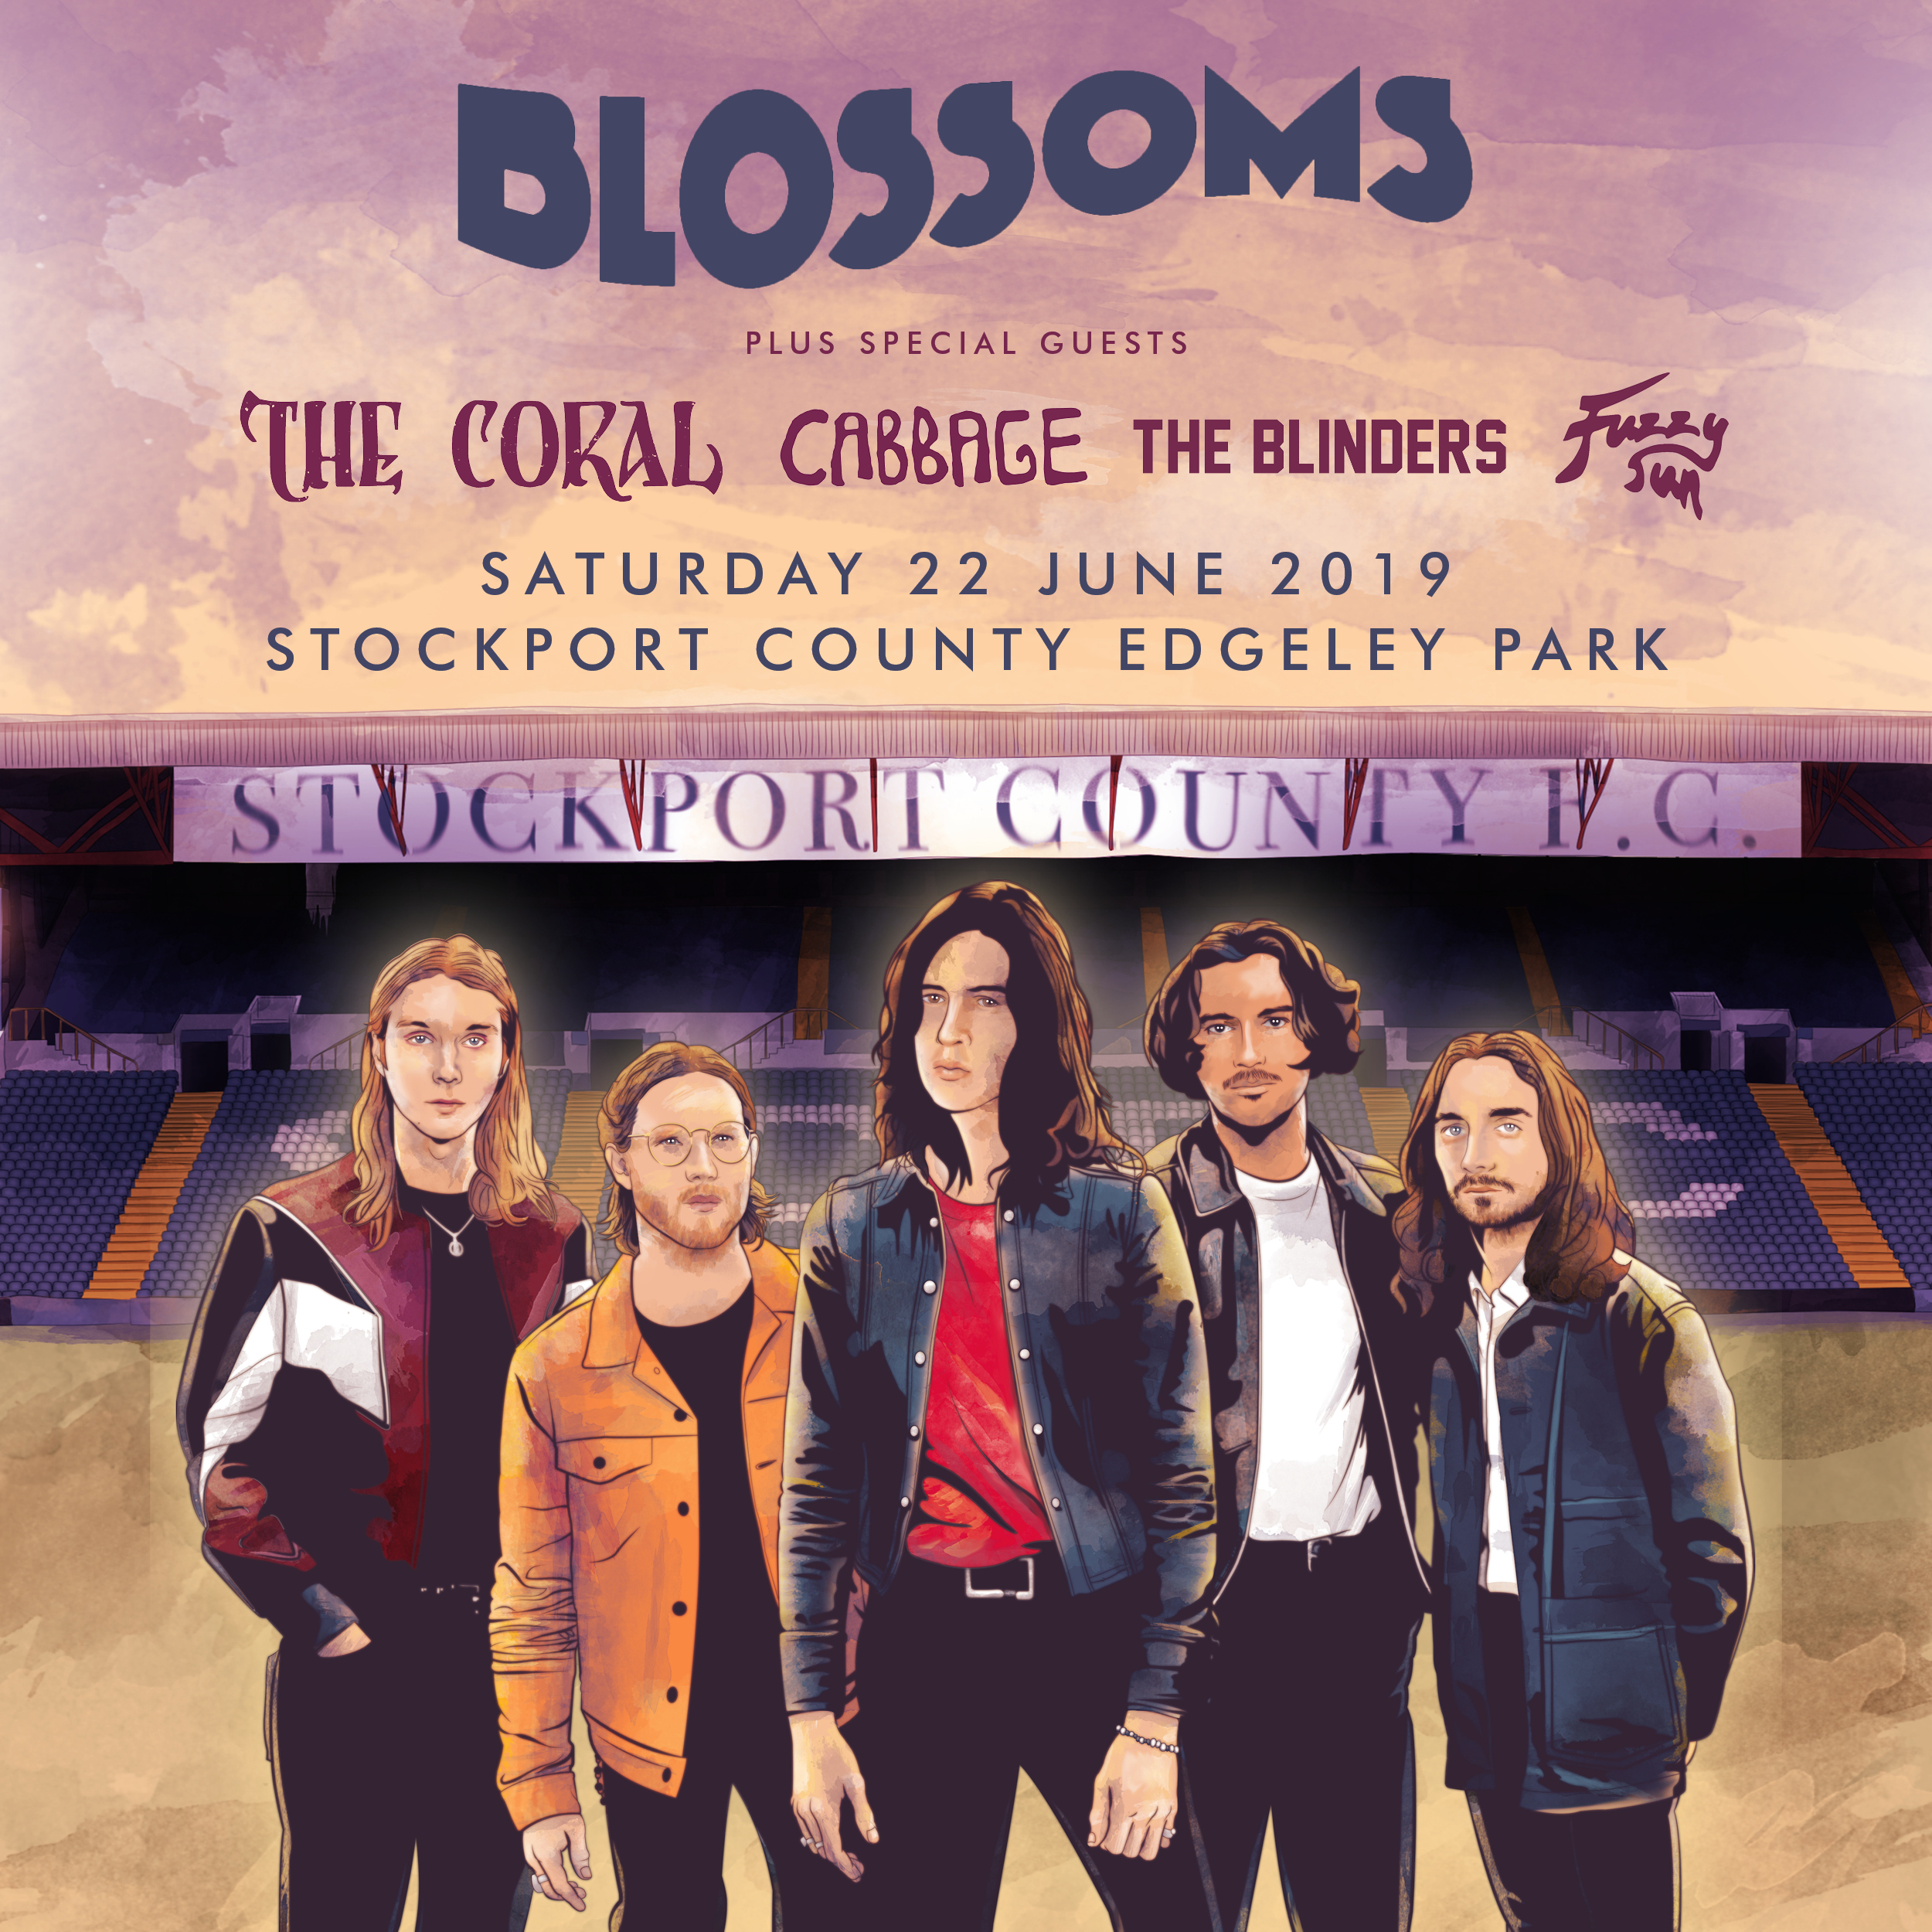 Blossoms headline gig announcement 2019